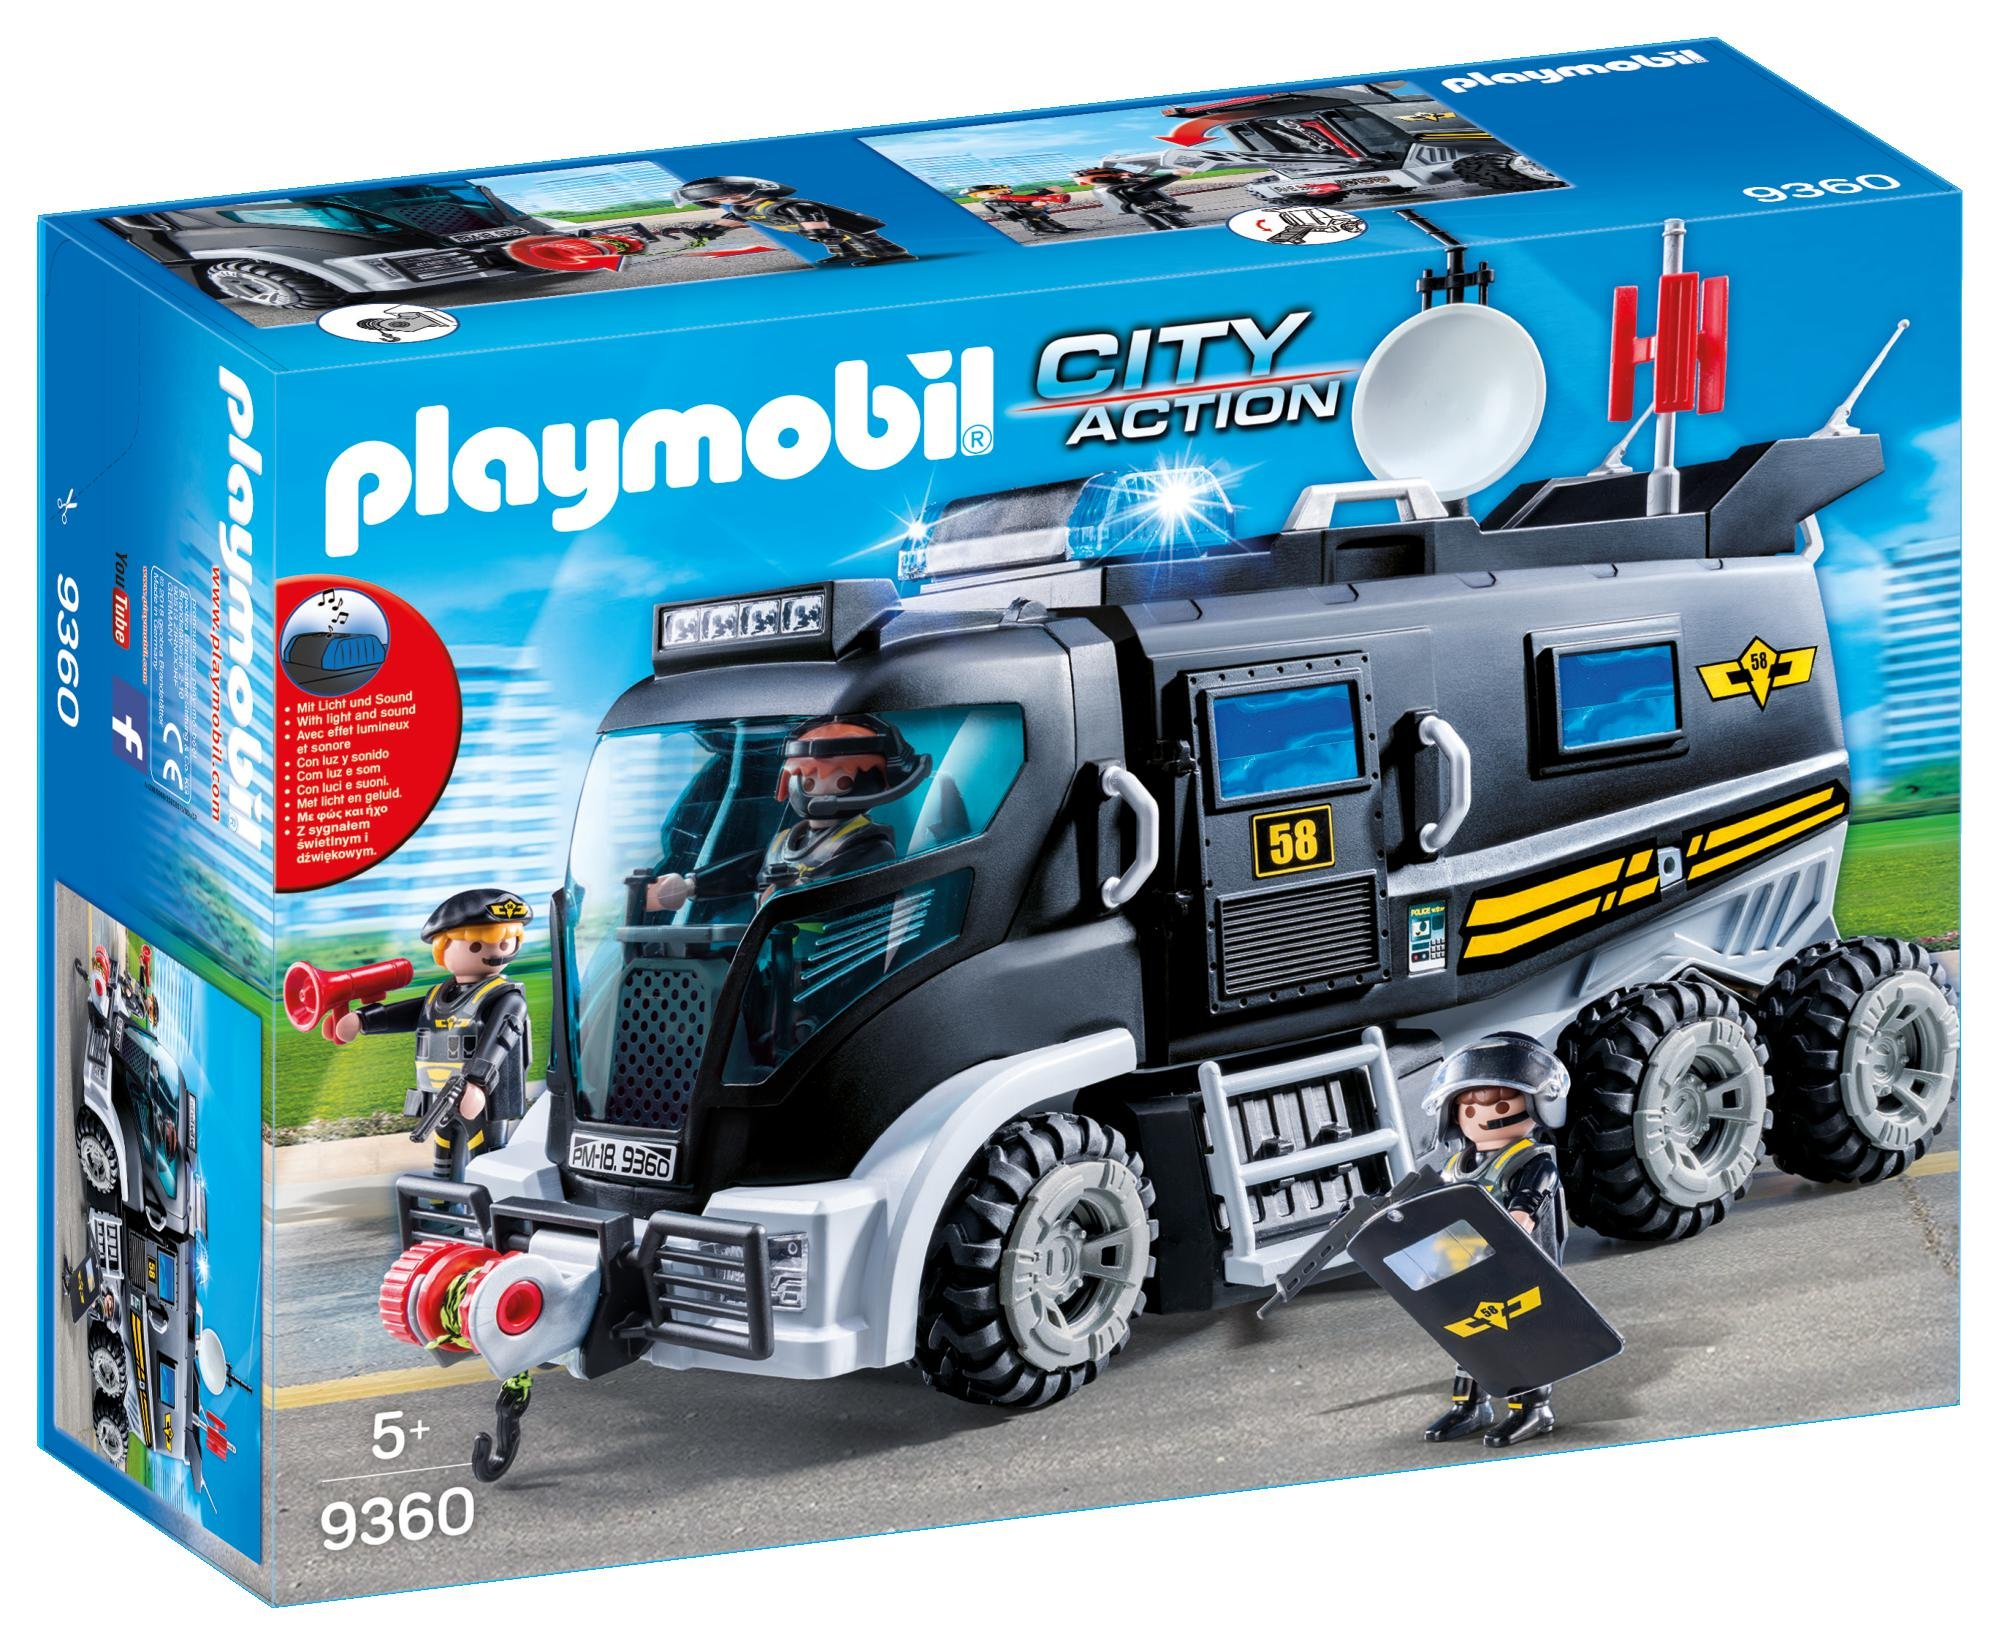 PLAYMOBIL 9360 SWAT Team truck with light and sound - NEW 2018 by PLAYMOBIL® (Image #1)